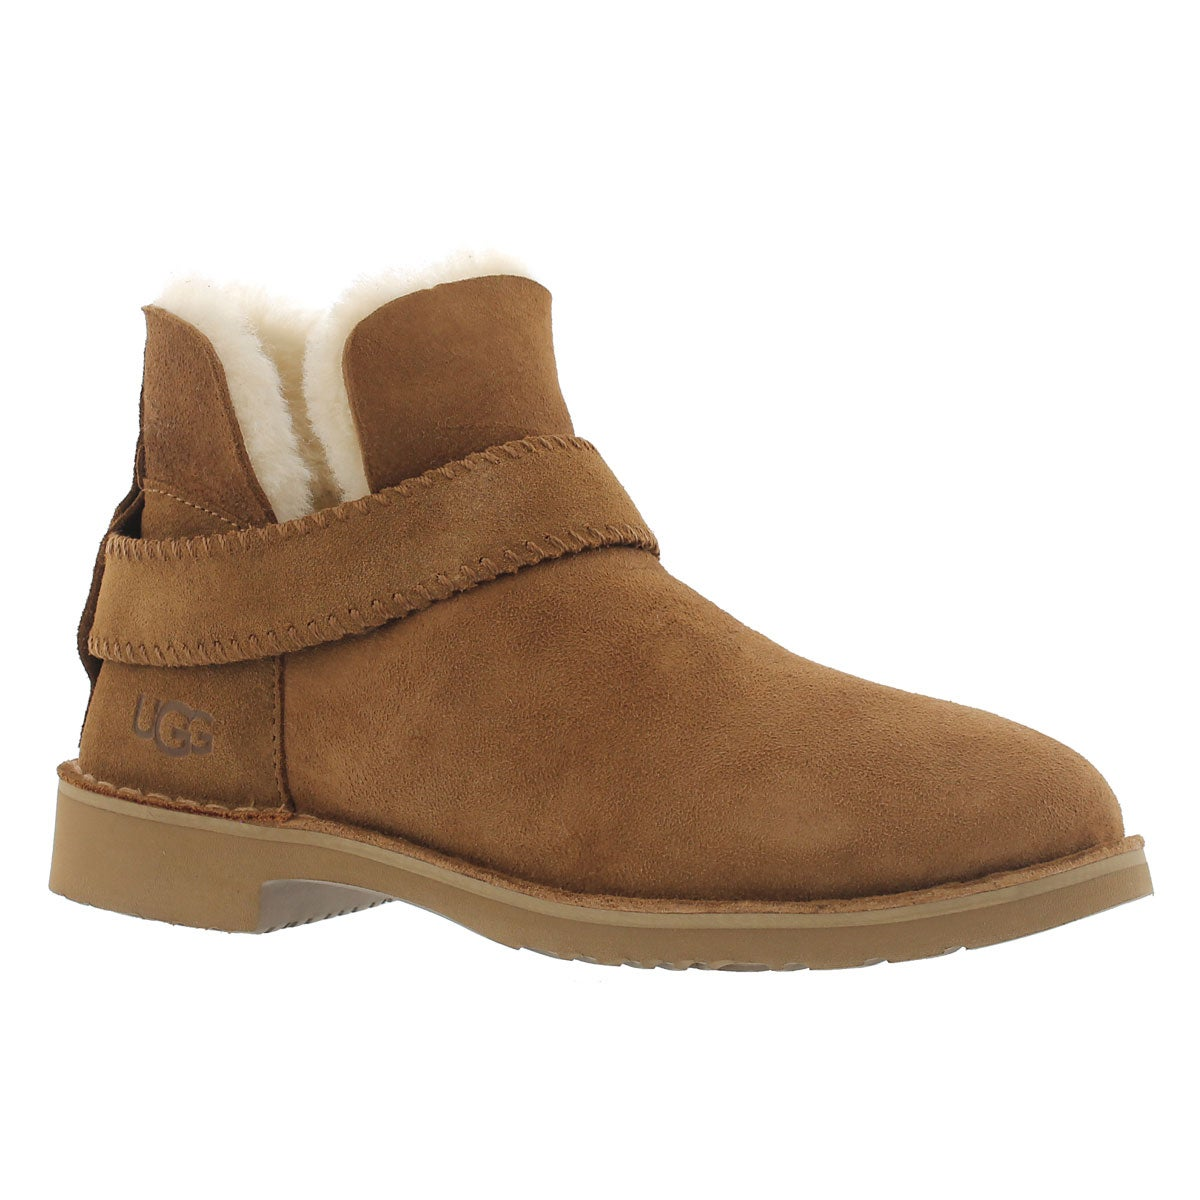 Women's MCKAY chestnut sheepskin booties